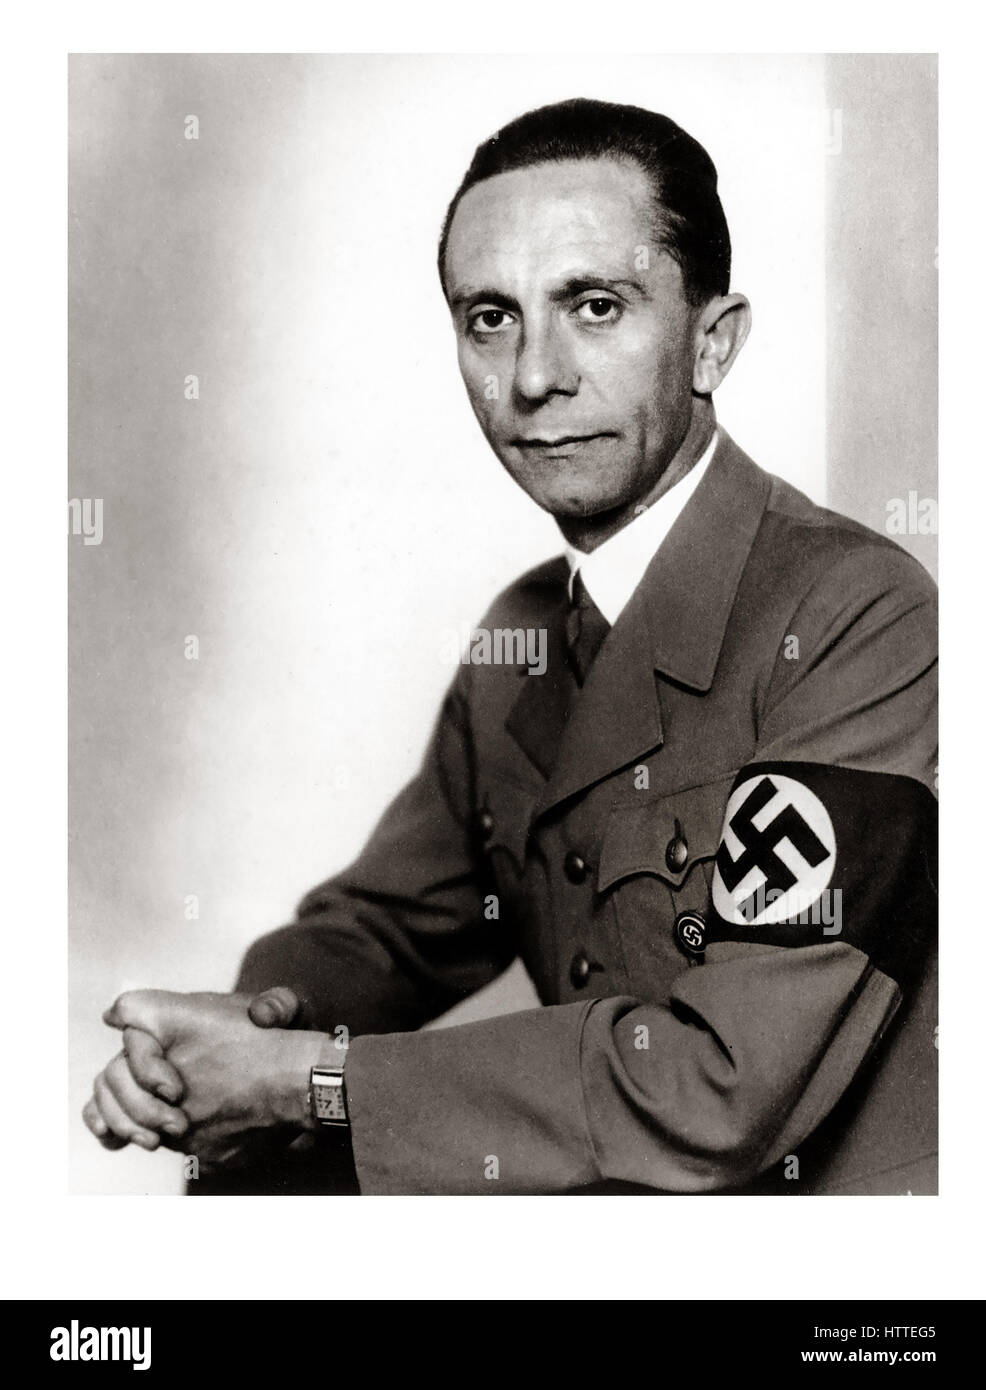 GOEBBELS 1930's portrait of infamous leading propaganda strategist Nazi, Joseph Goebbels wearing NSDAP military - Stock Image